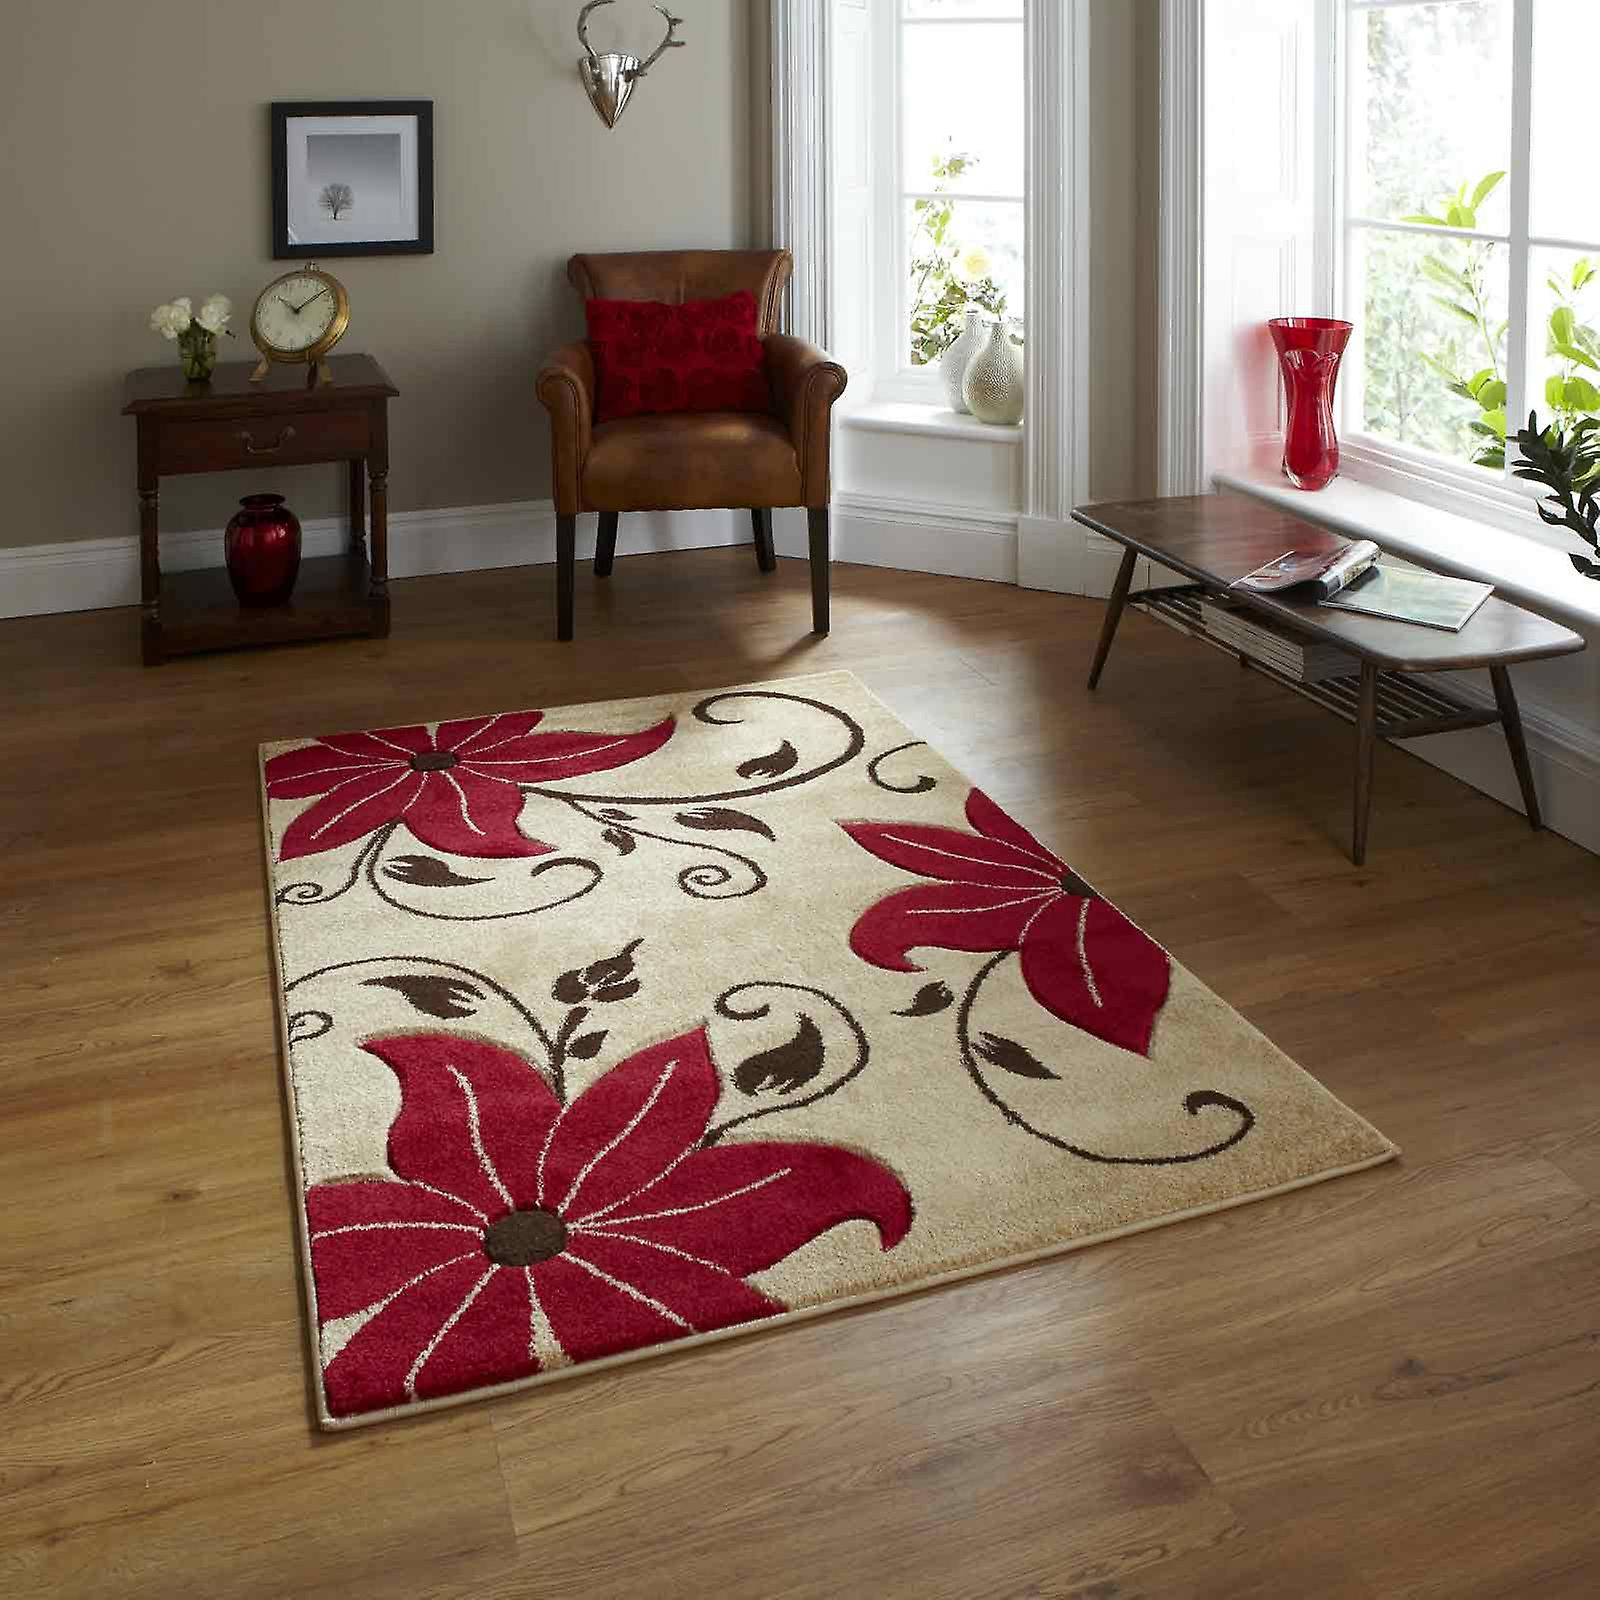 Verona Oc15 Hand Carved Rugs In Beige Red